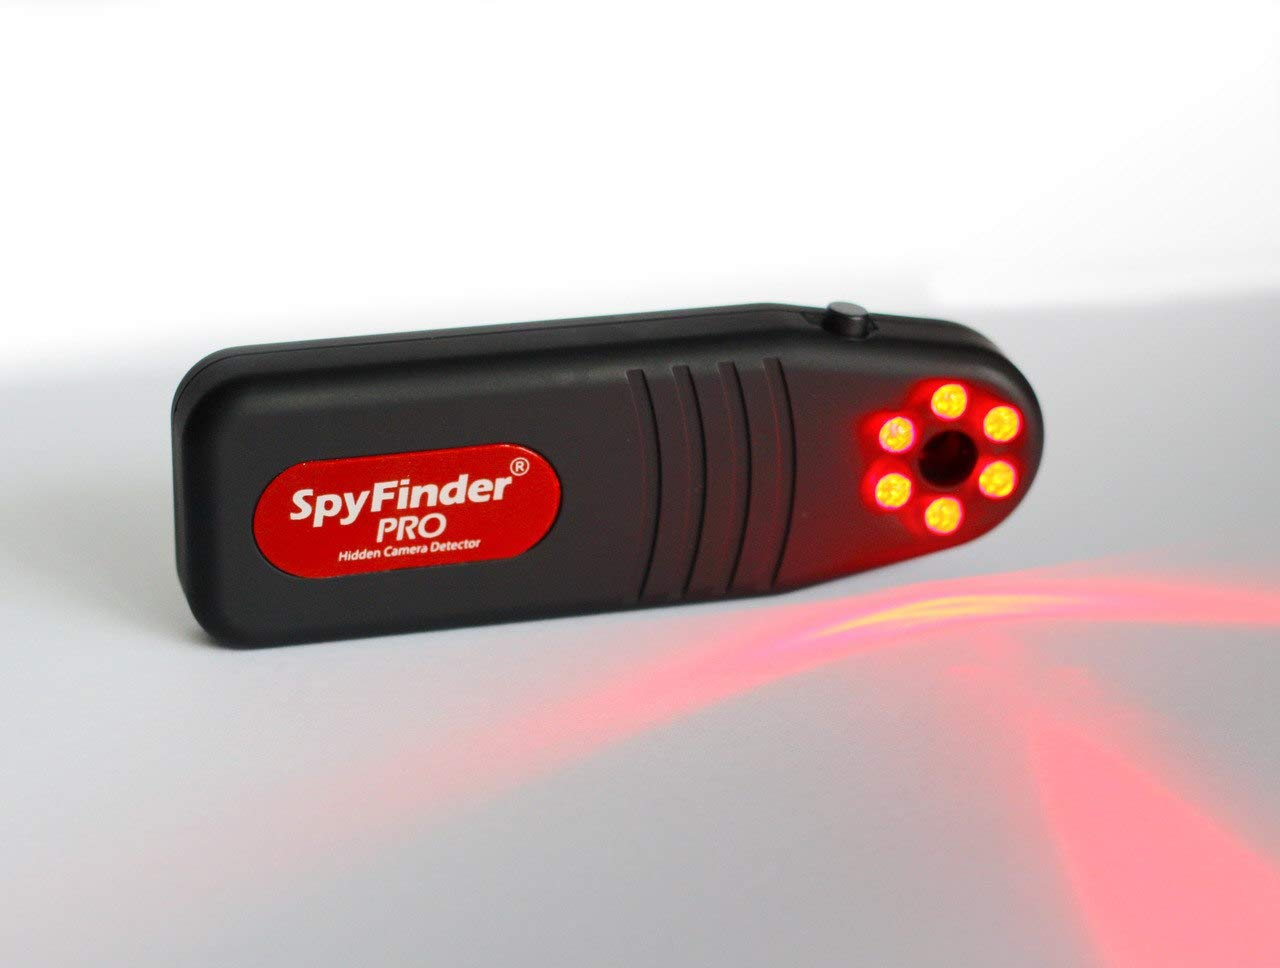 PRO by KJB Security Finds Hidden Camera Lens Professional Detection Law Grade Portable Tool by SPYFINDER